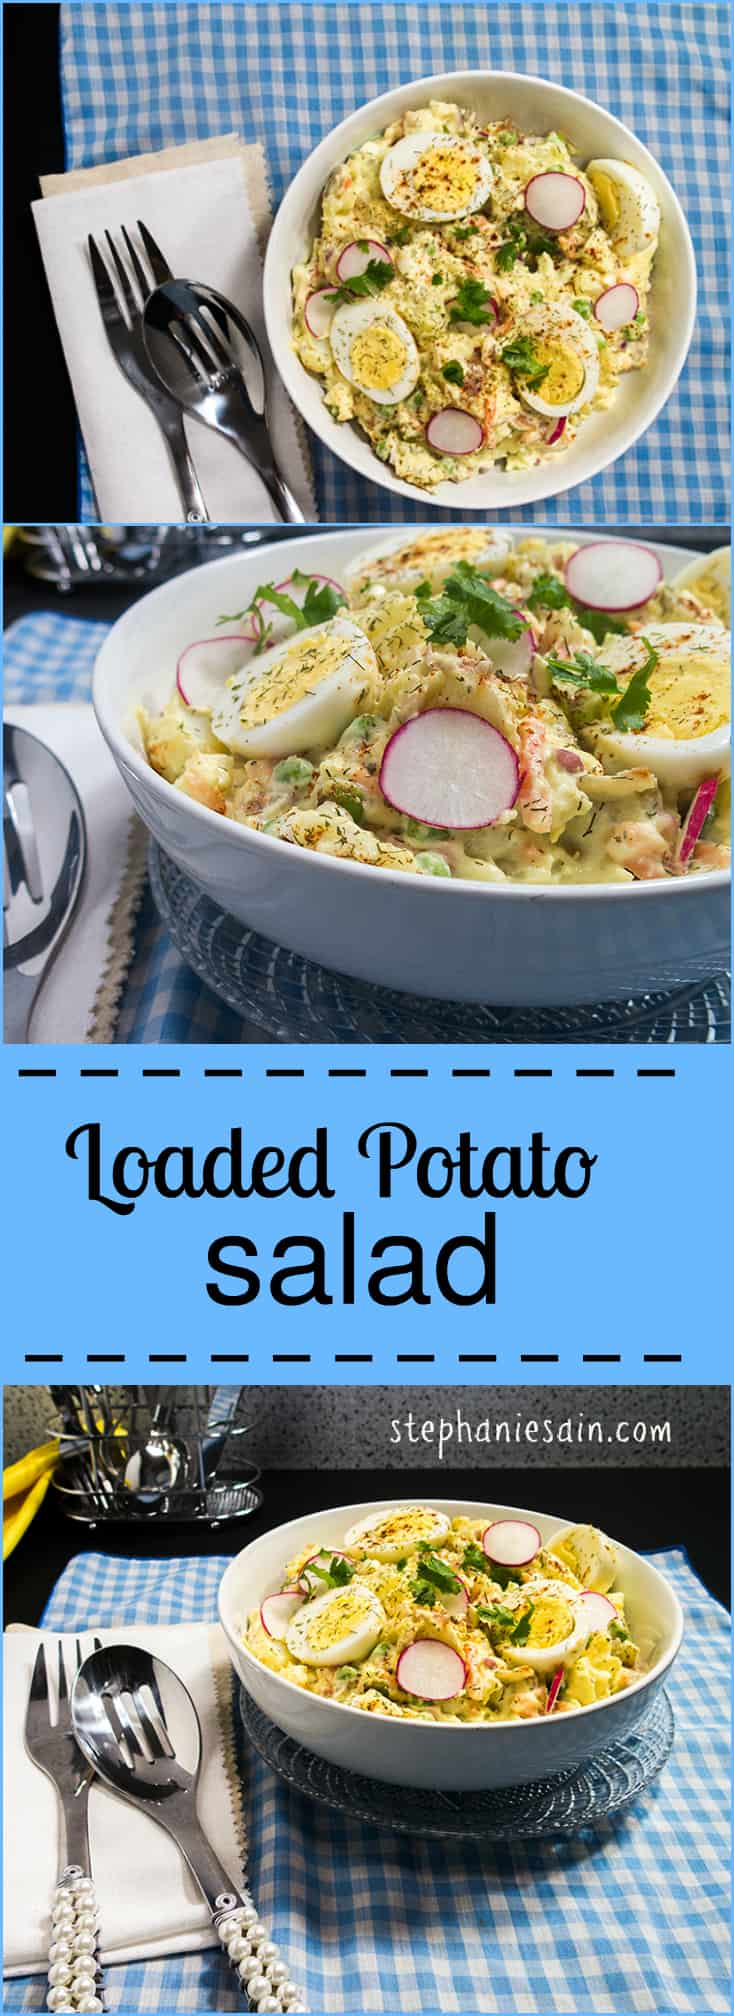 Loaded Potato Salad is the perfect side for any gathering or cookout. Fully loaded and could also stand alone as a complete meal. Vegetarian and Gluten Free.